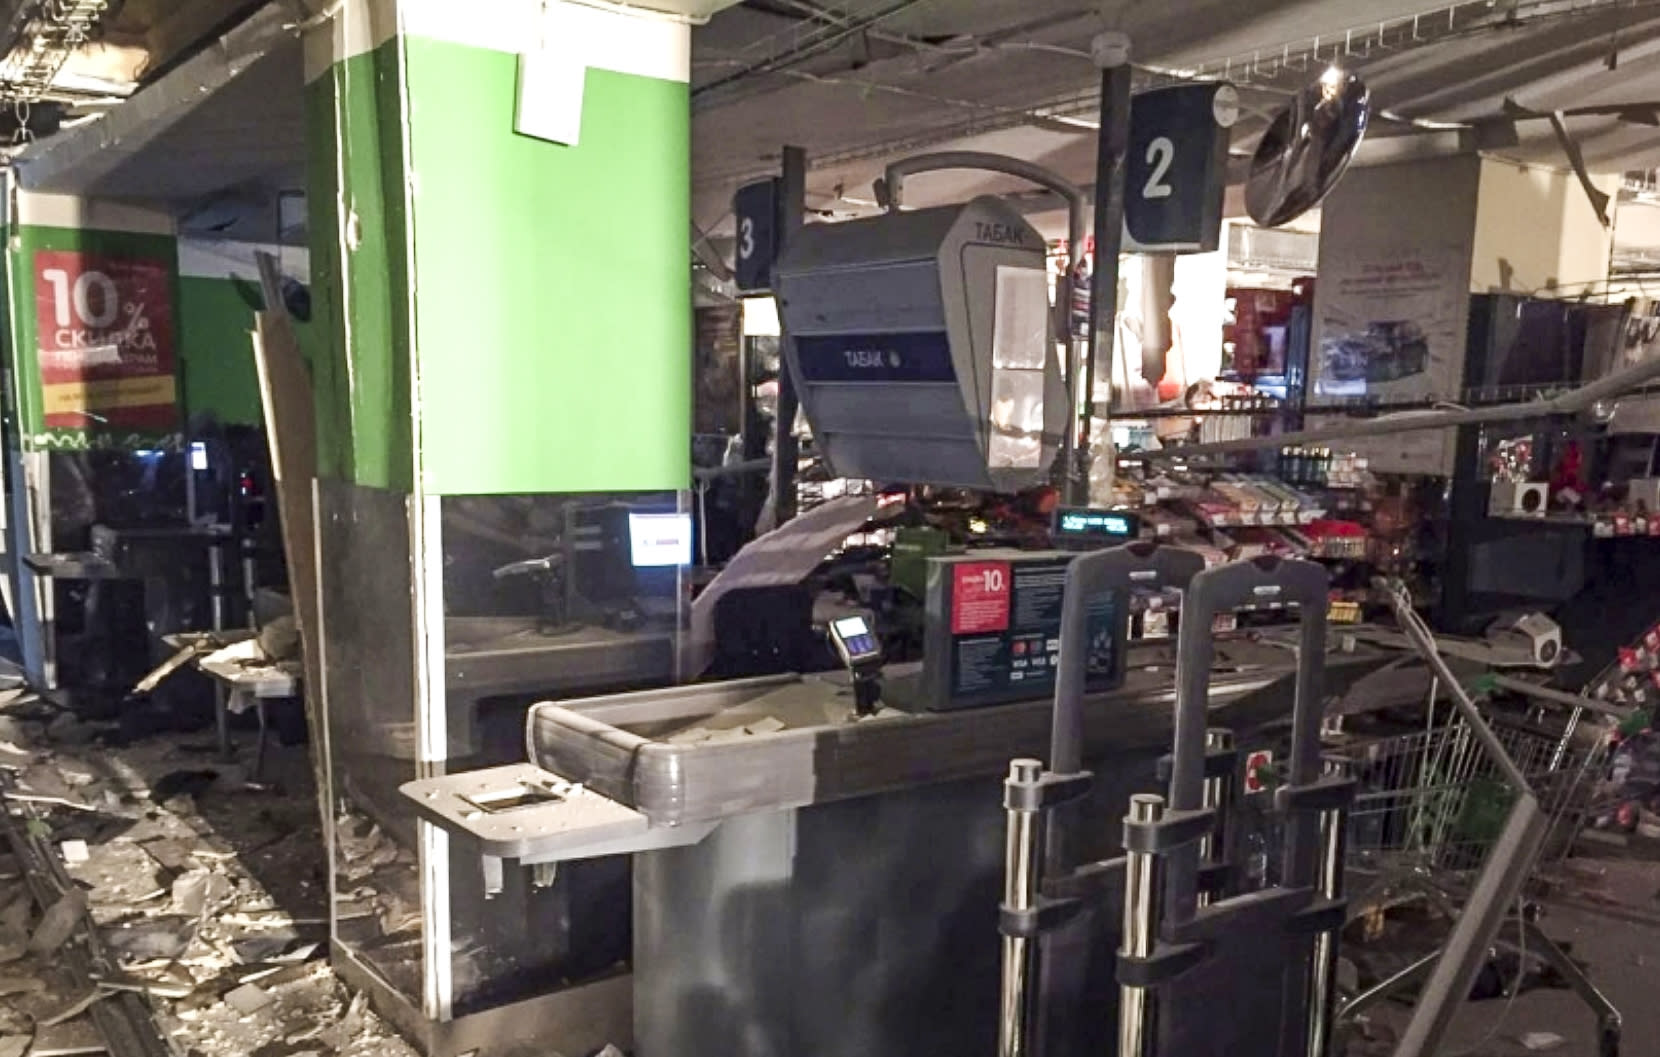 <p>This photo provided by the Information Center of the Russian National Antiterrorism Committee shows the damage inside a supermarket after an explosion, in St. Petersburg, Russia, Thursday, Dec. 28, 2017. (Photo: National Antiterrorism Committee via AP) </p>